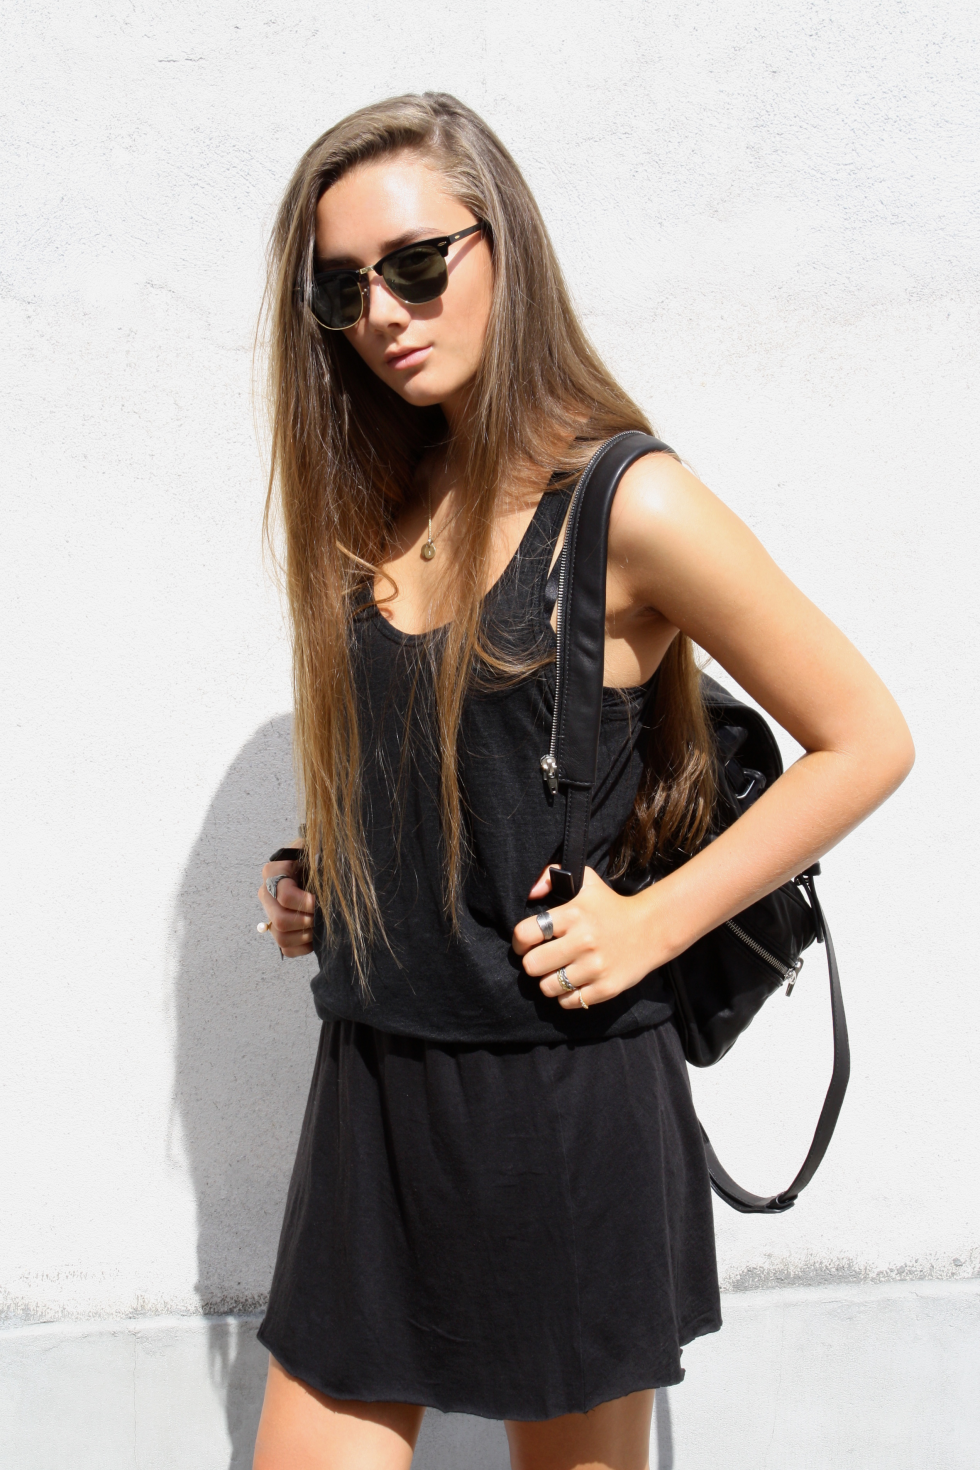 Cecilie Slemming is wearing all black, top from Zara, skirt from Gina Tricot, and backpack from Alexander Wang